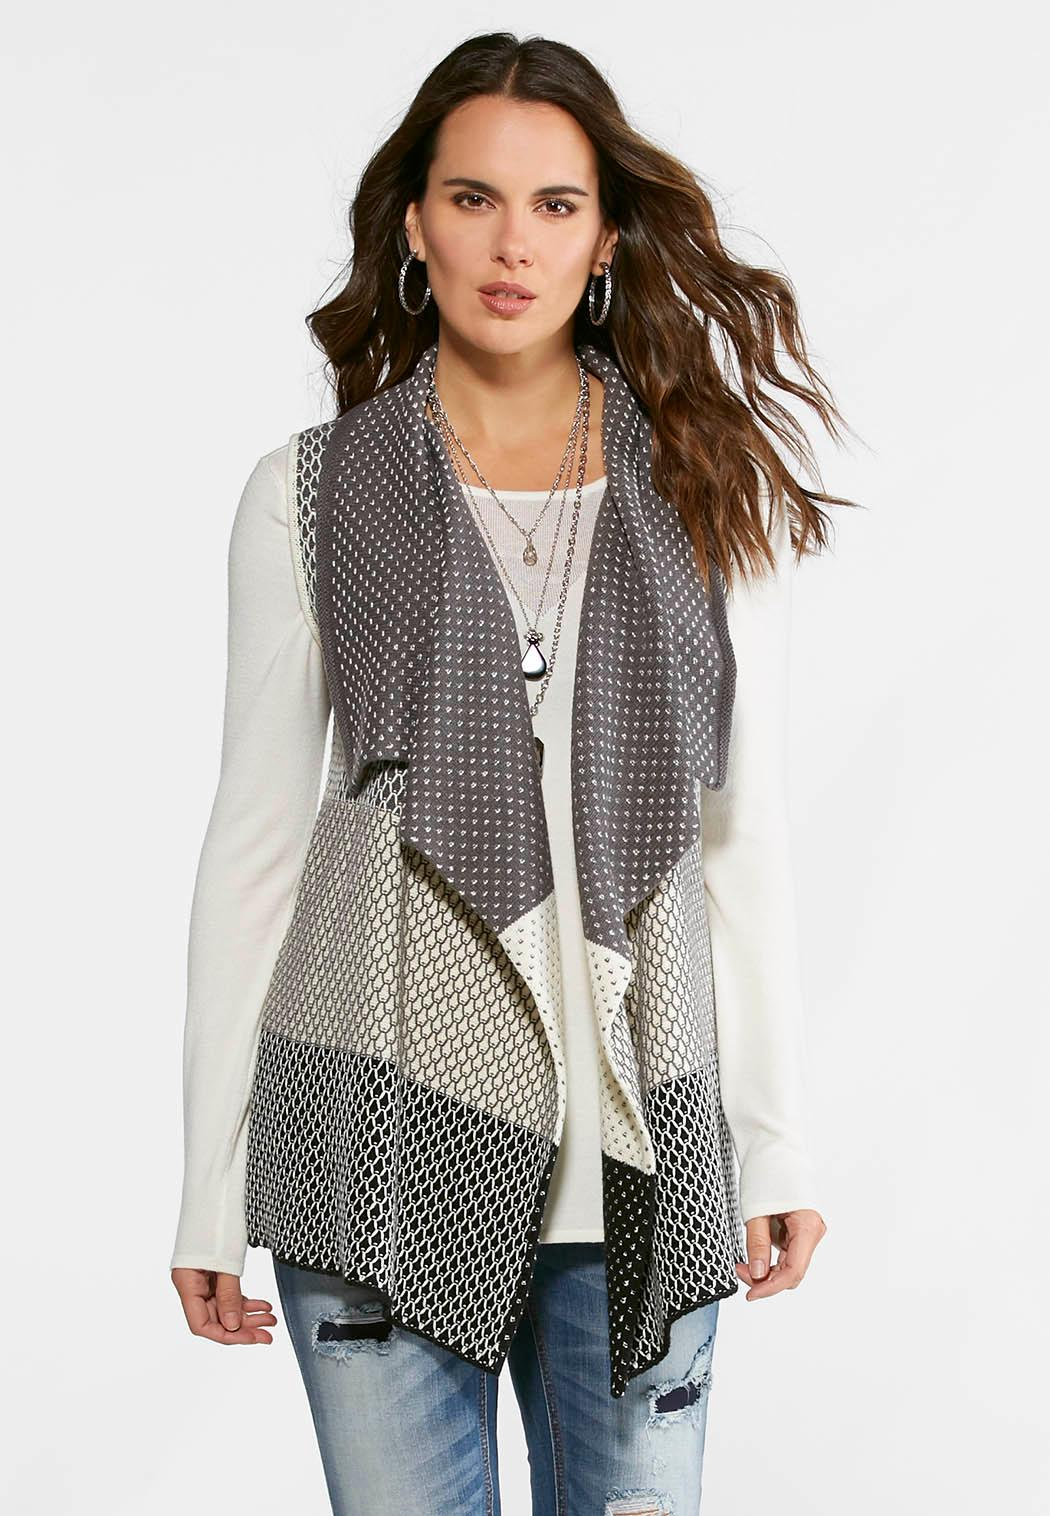 Shades Of Gray Sweater Vest-Plus Vests Cato Fashions